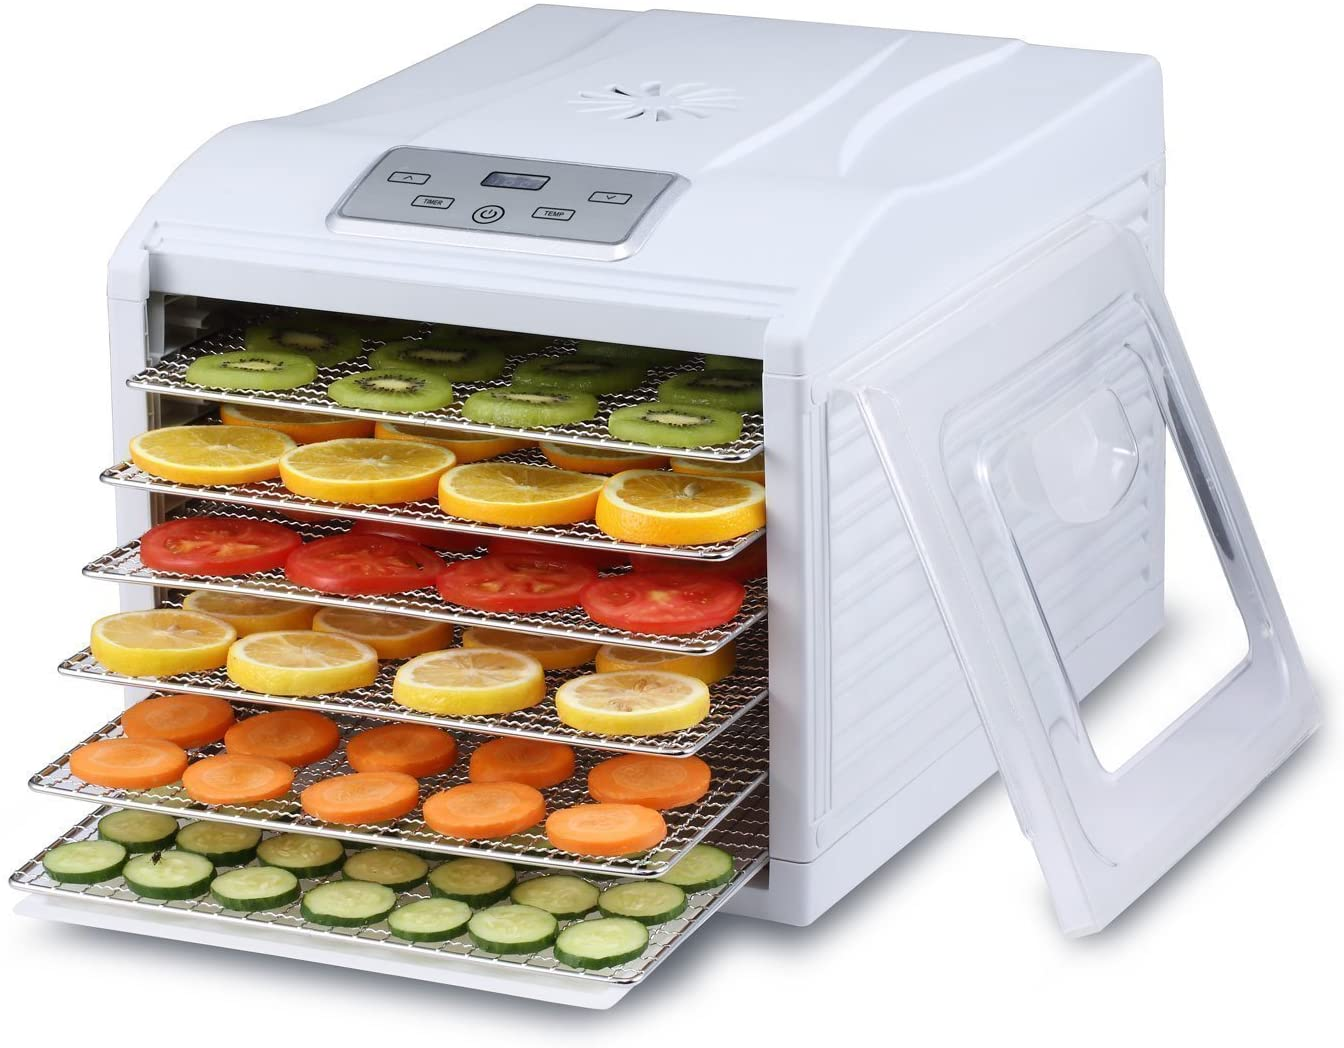 6 Tray Food Dehydrator with Digital Display - smrt-life.com